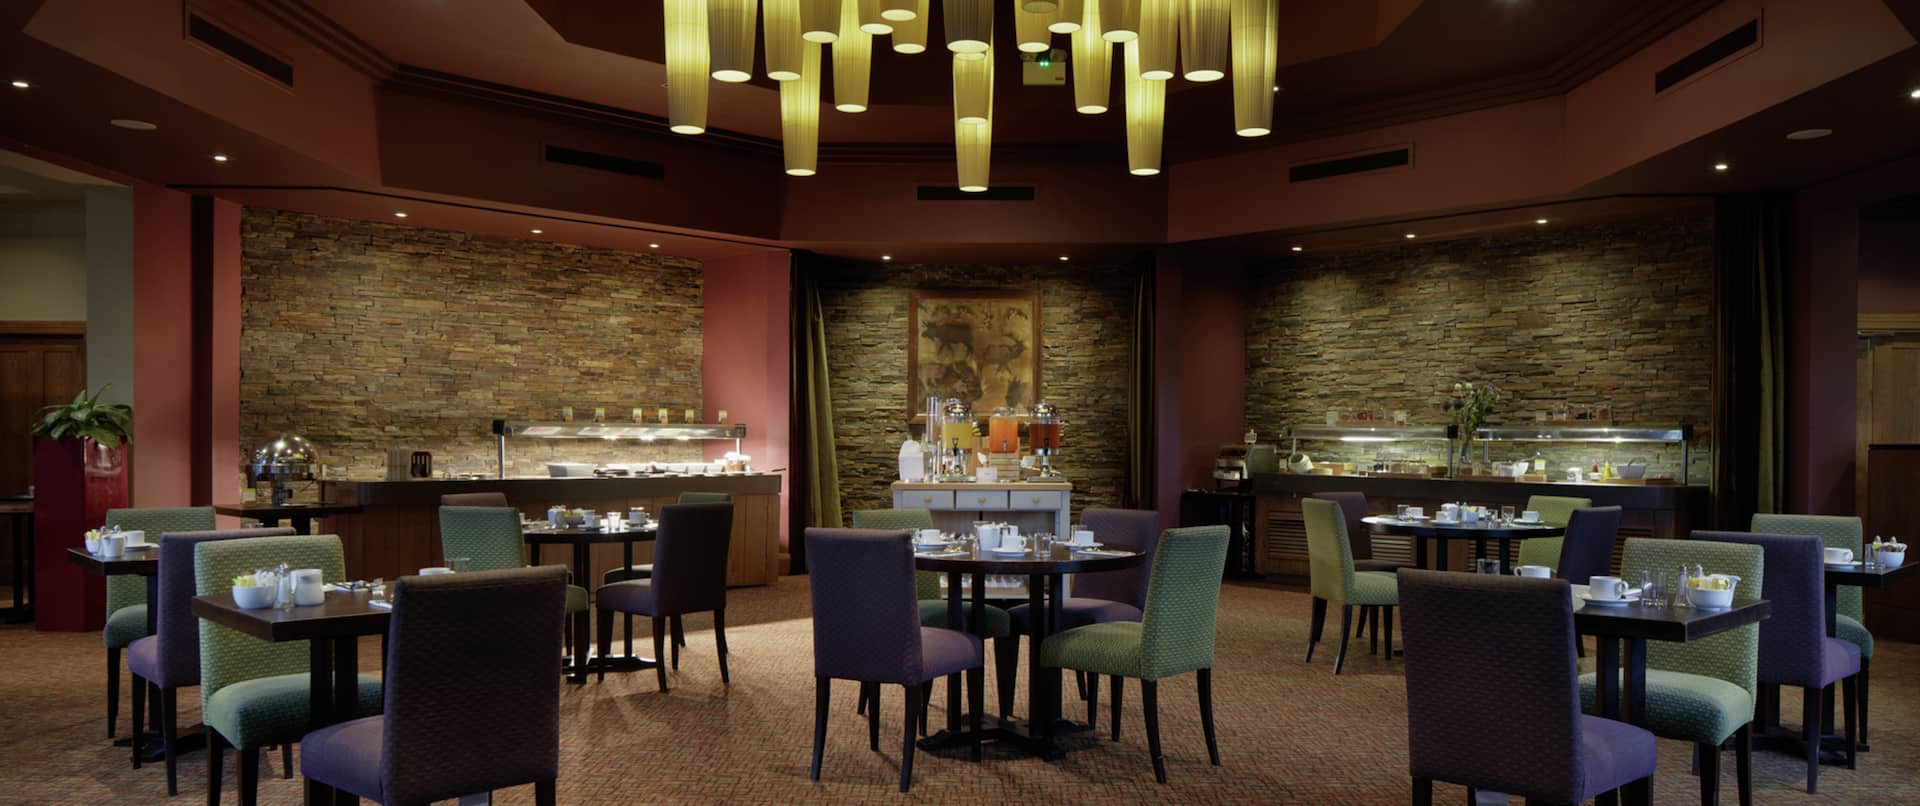 Breakfast Dining Area with Chairs, Tables and Food Buffet Counters